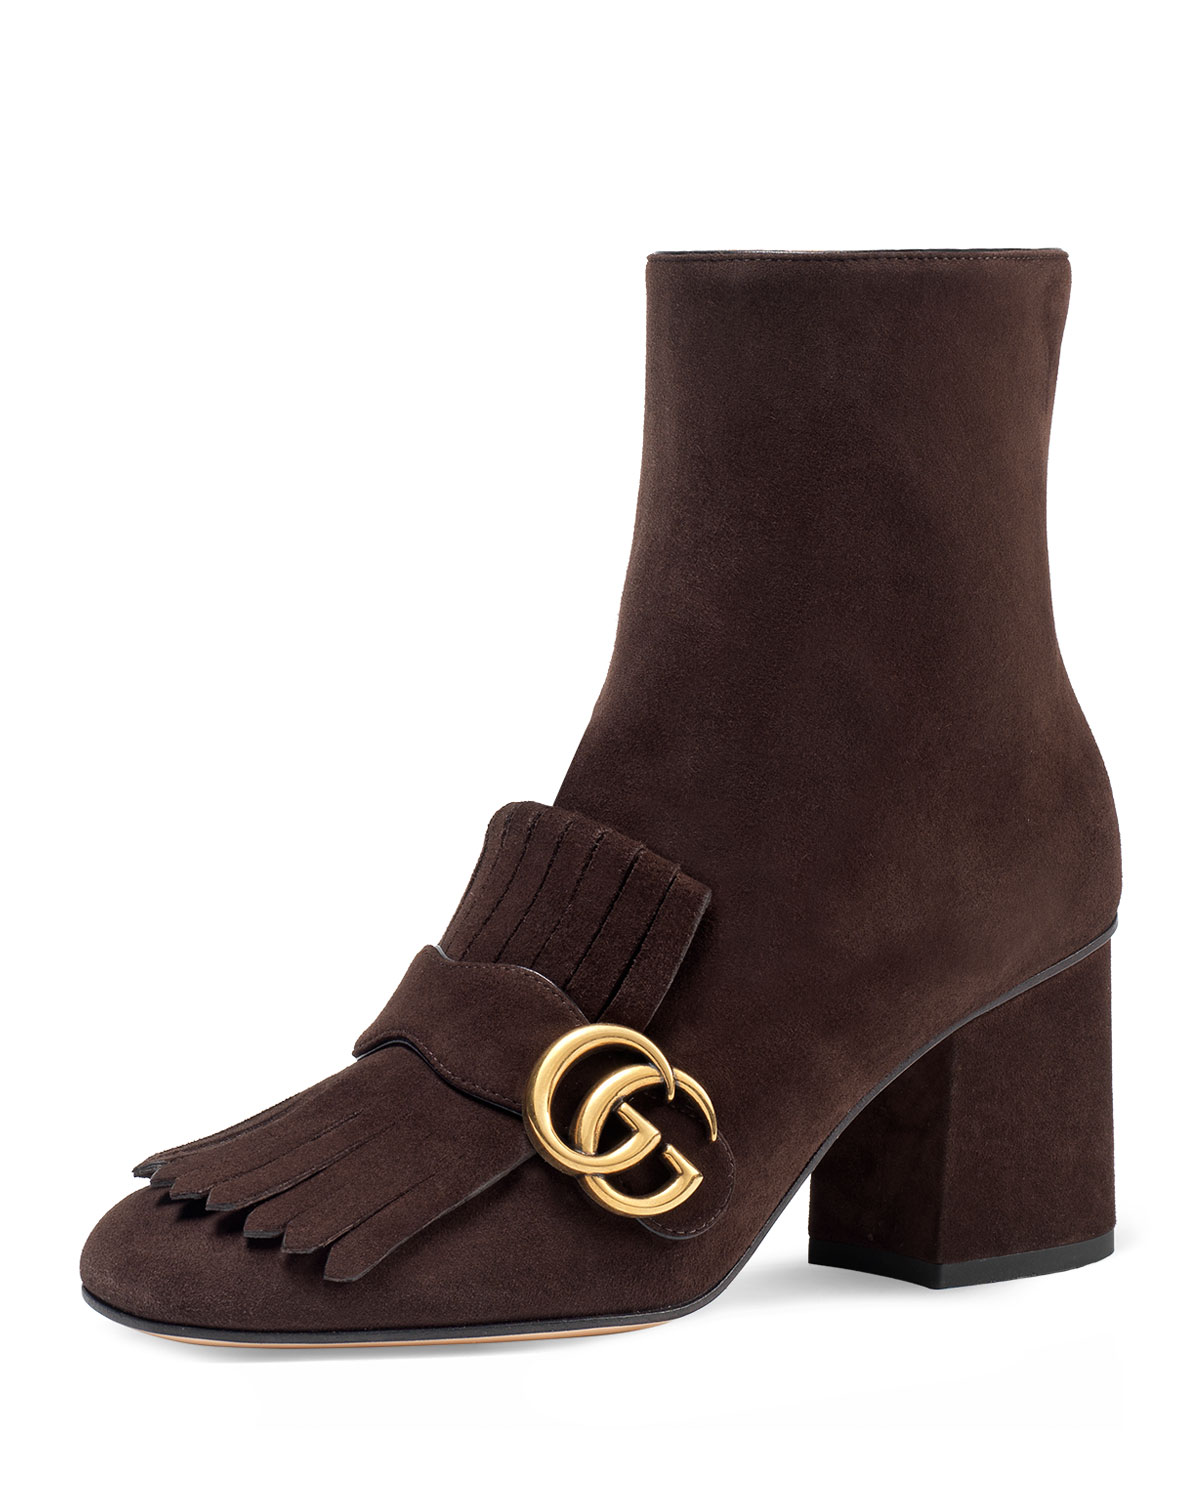 02a615647662 Gucci Marmont 75mm Fringe Ankle Boot | Neiman Marcus